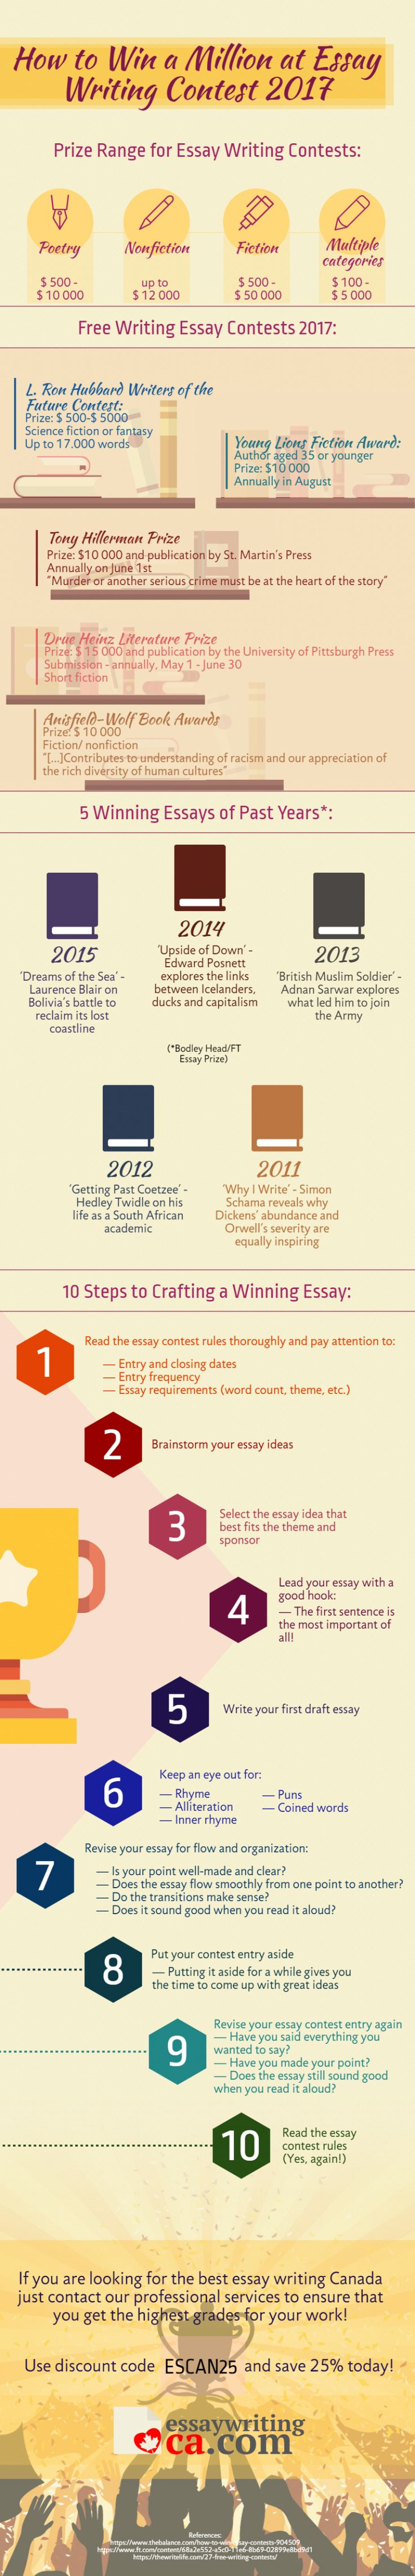 best ideas about essay writing competition these amazing tips will show you how to win essay competition so make sure to check them out and out